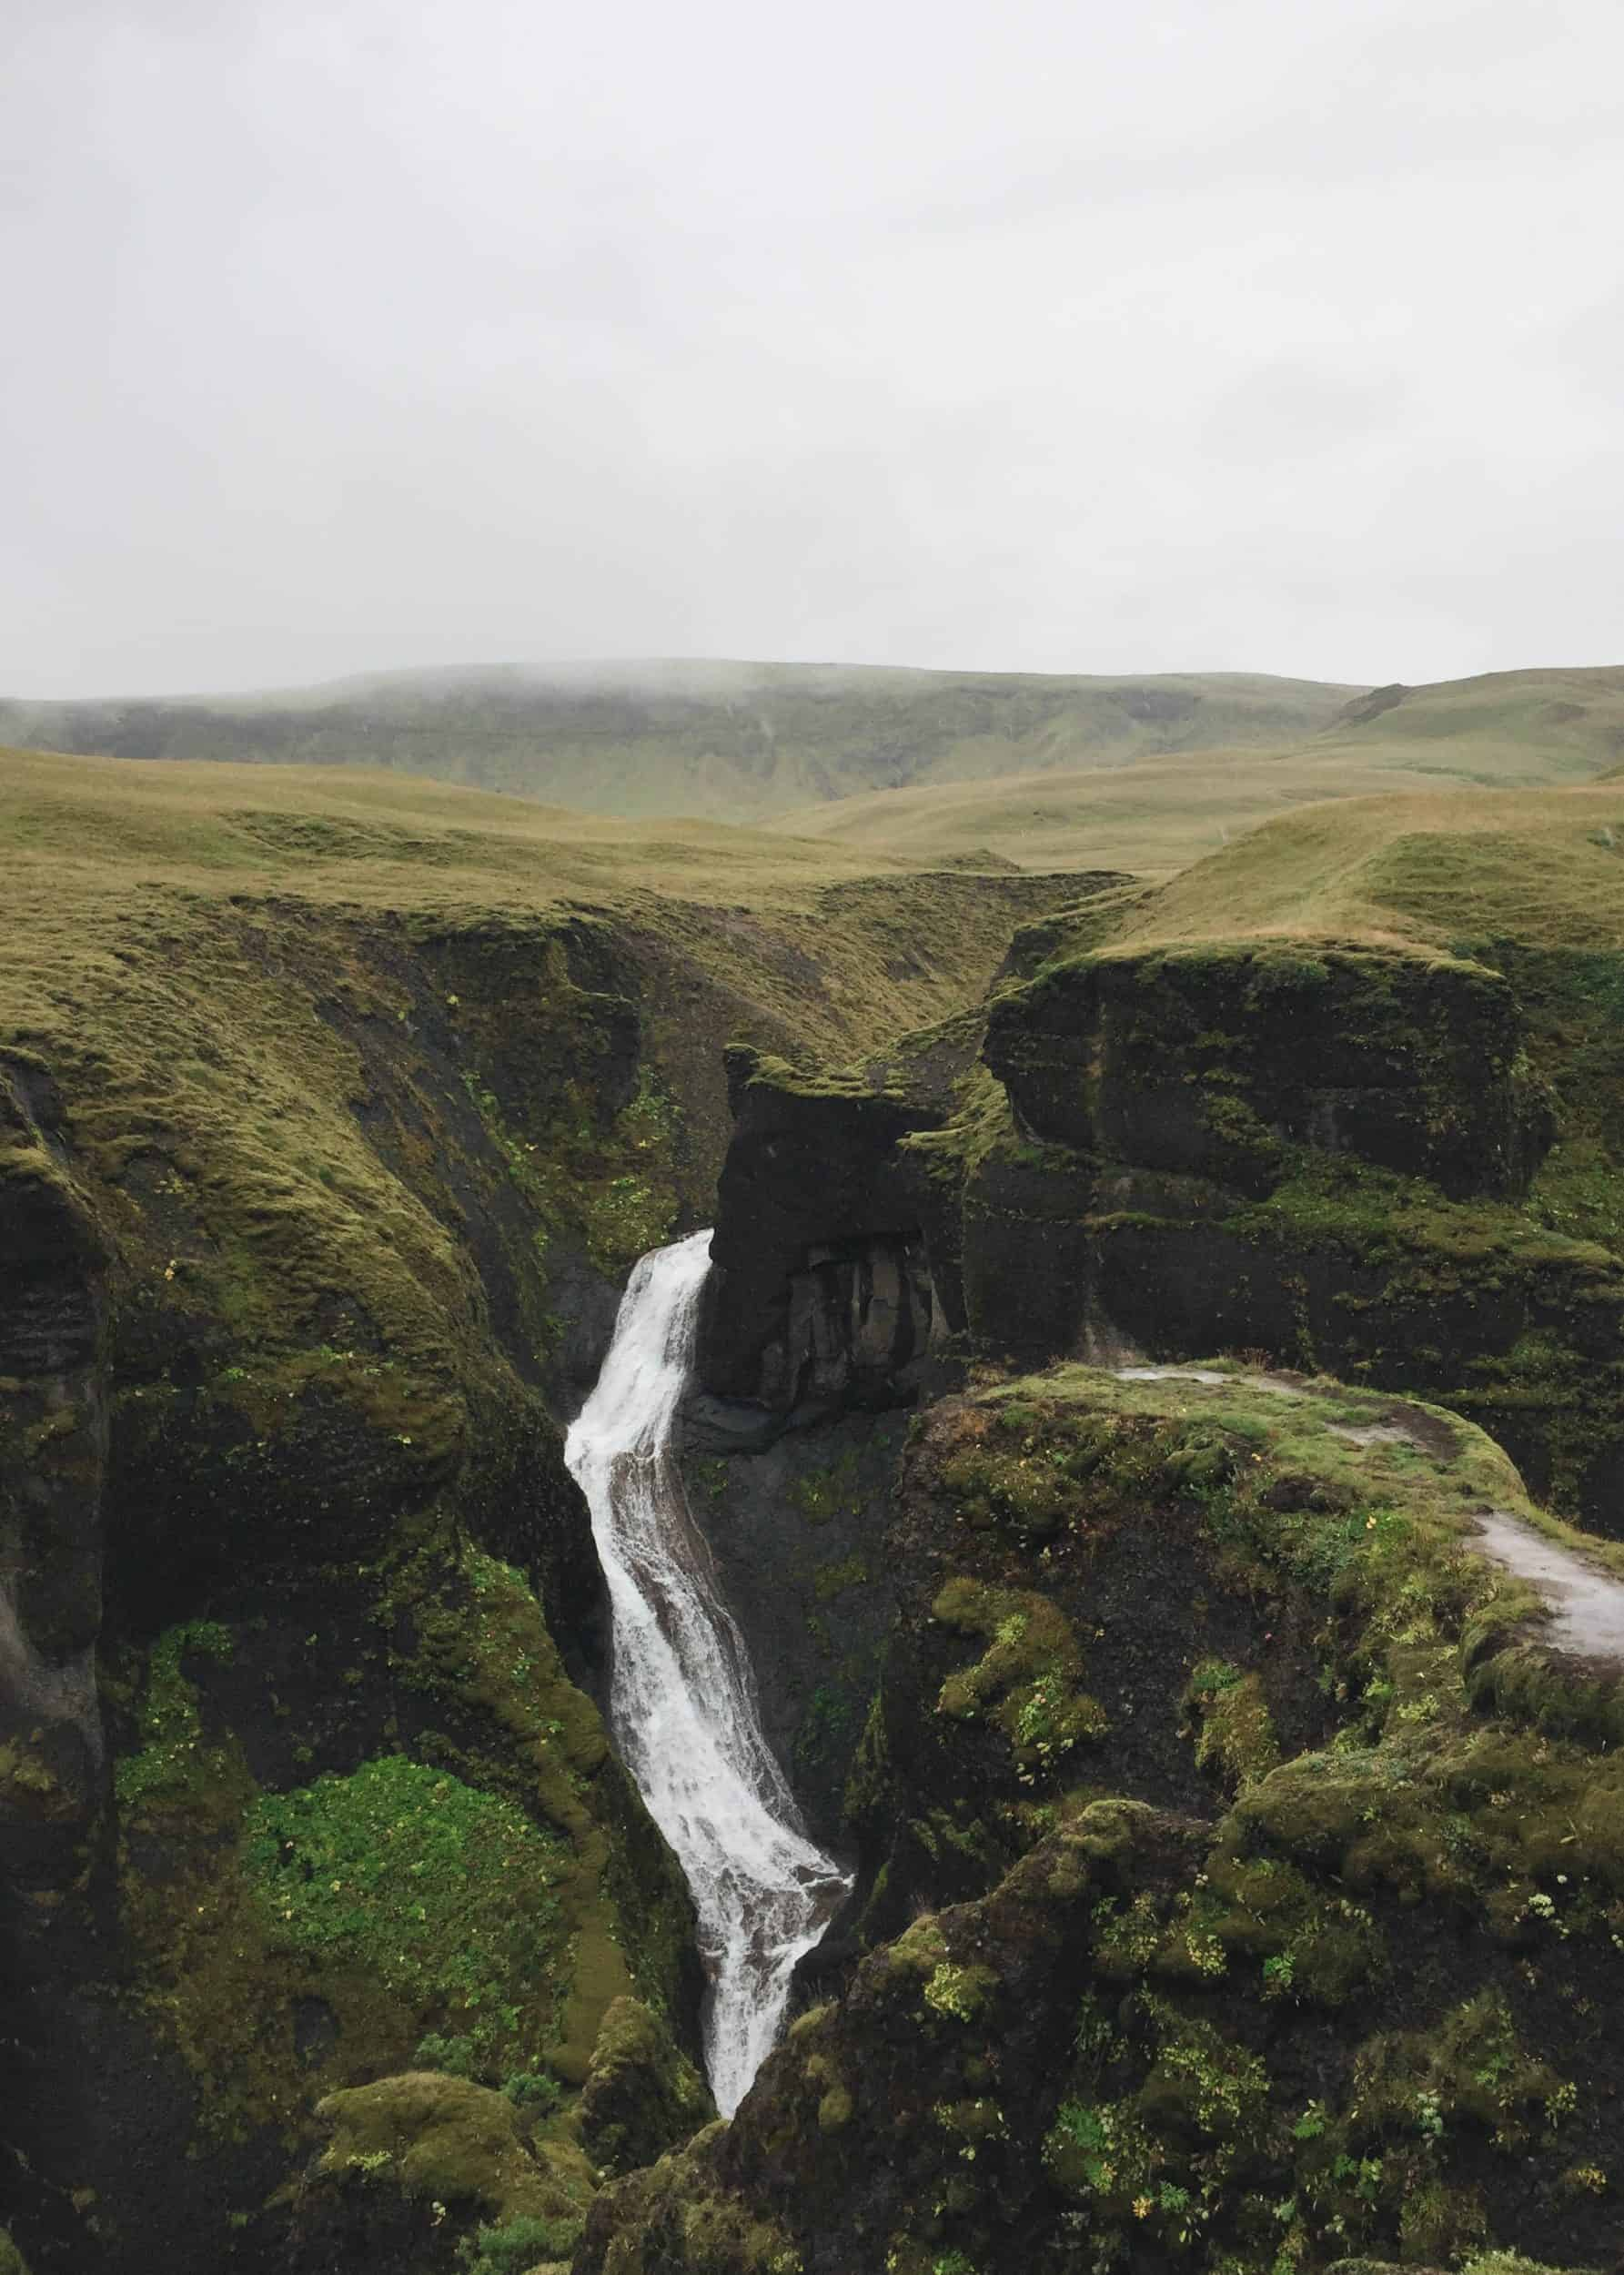 Iceland travel diary | perfect Iceland 7 day road trip itinerary | best 1 week Iceland Ring Road guide | how to do Iceland in one week | Blue Lagoon, Reykjavik, Golden Circle Tour, Westman Islands, Vik, Jokulsarlon | top tips on visiting Iceland | Diary of a Toronto Girl, a Canadian lifestyle blog